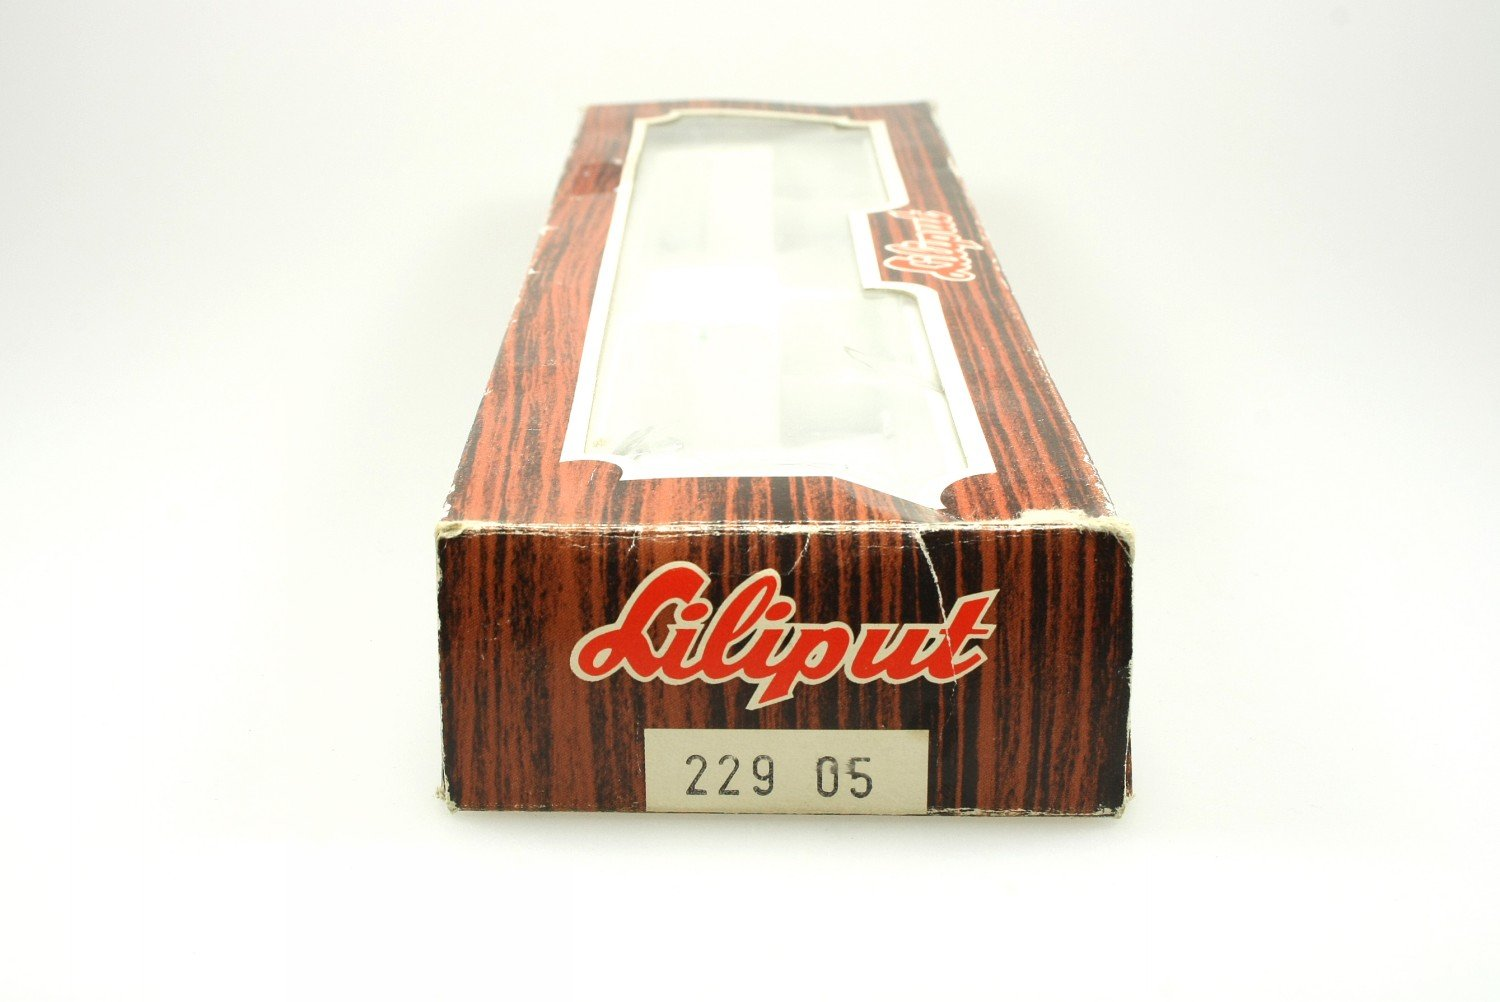 liliput 22905 bierwagen jever kirin beer in originalverpackung ebay. Black Bedroom Furniture Sets. Home Design Ideas